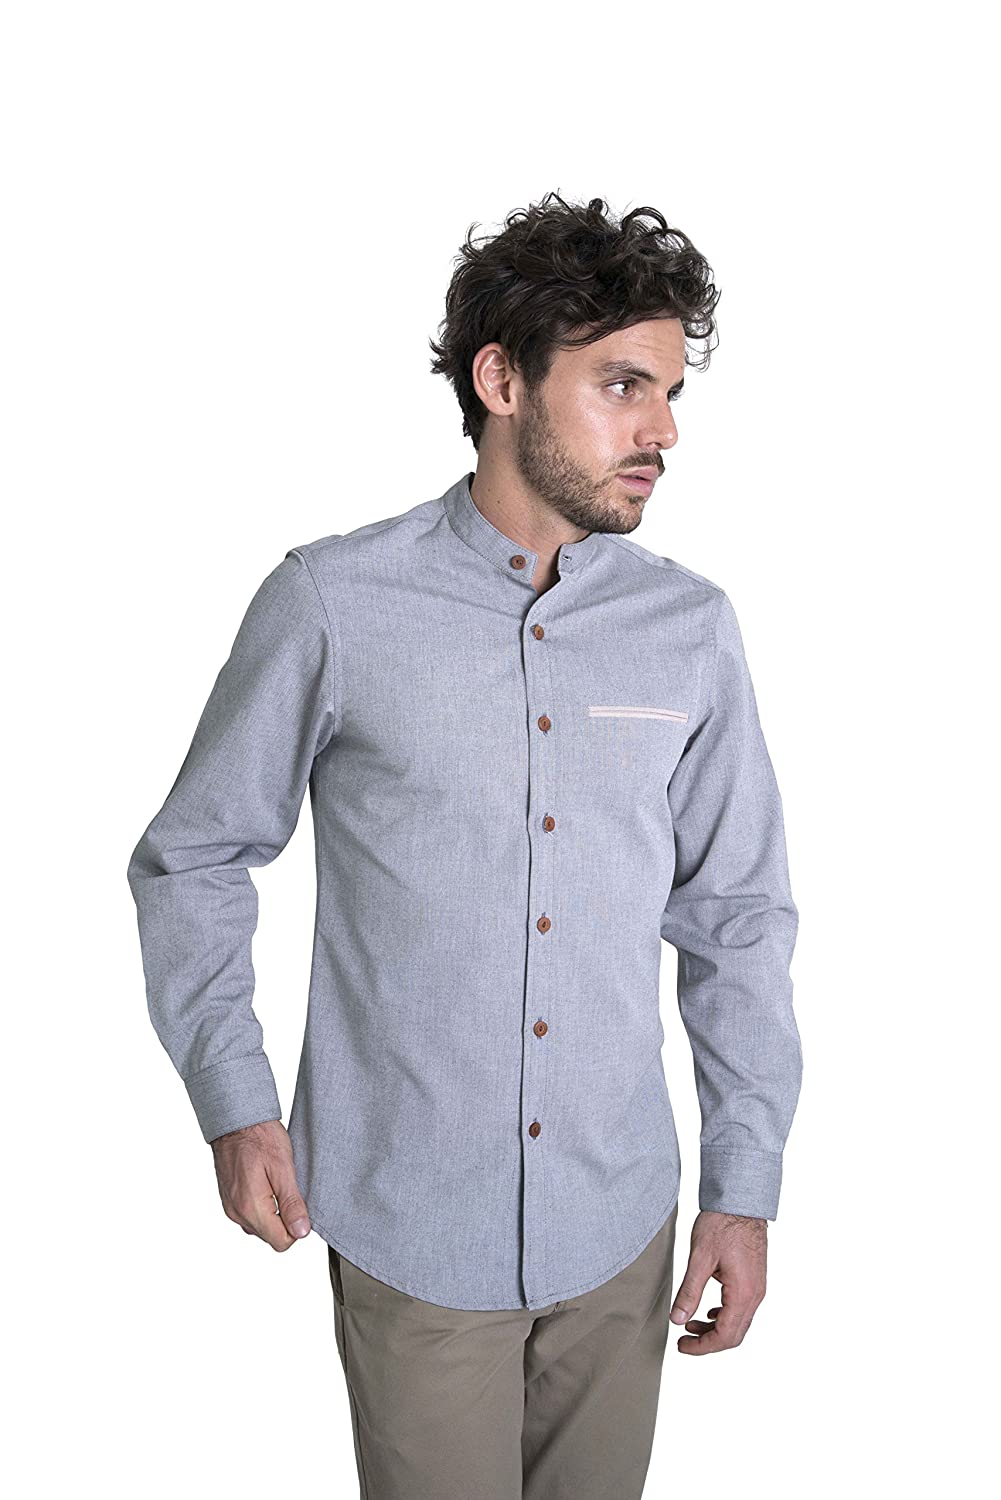 e876226d024f5c ... This shirt adapts perfectly to your body shape without being too tight